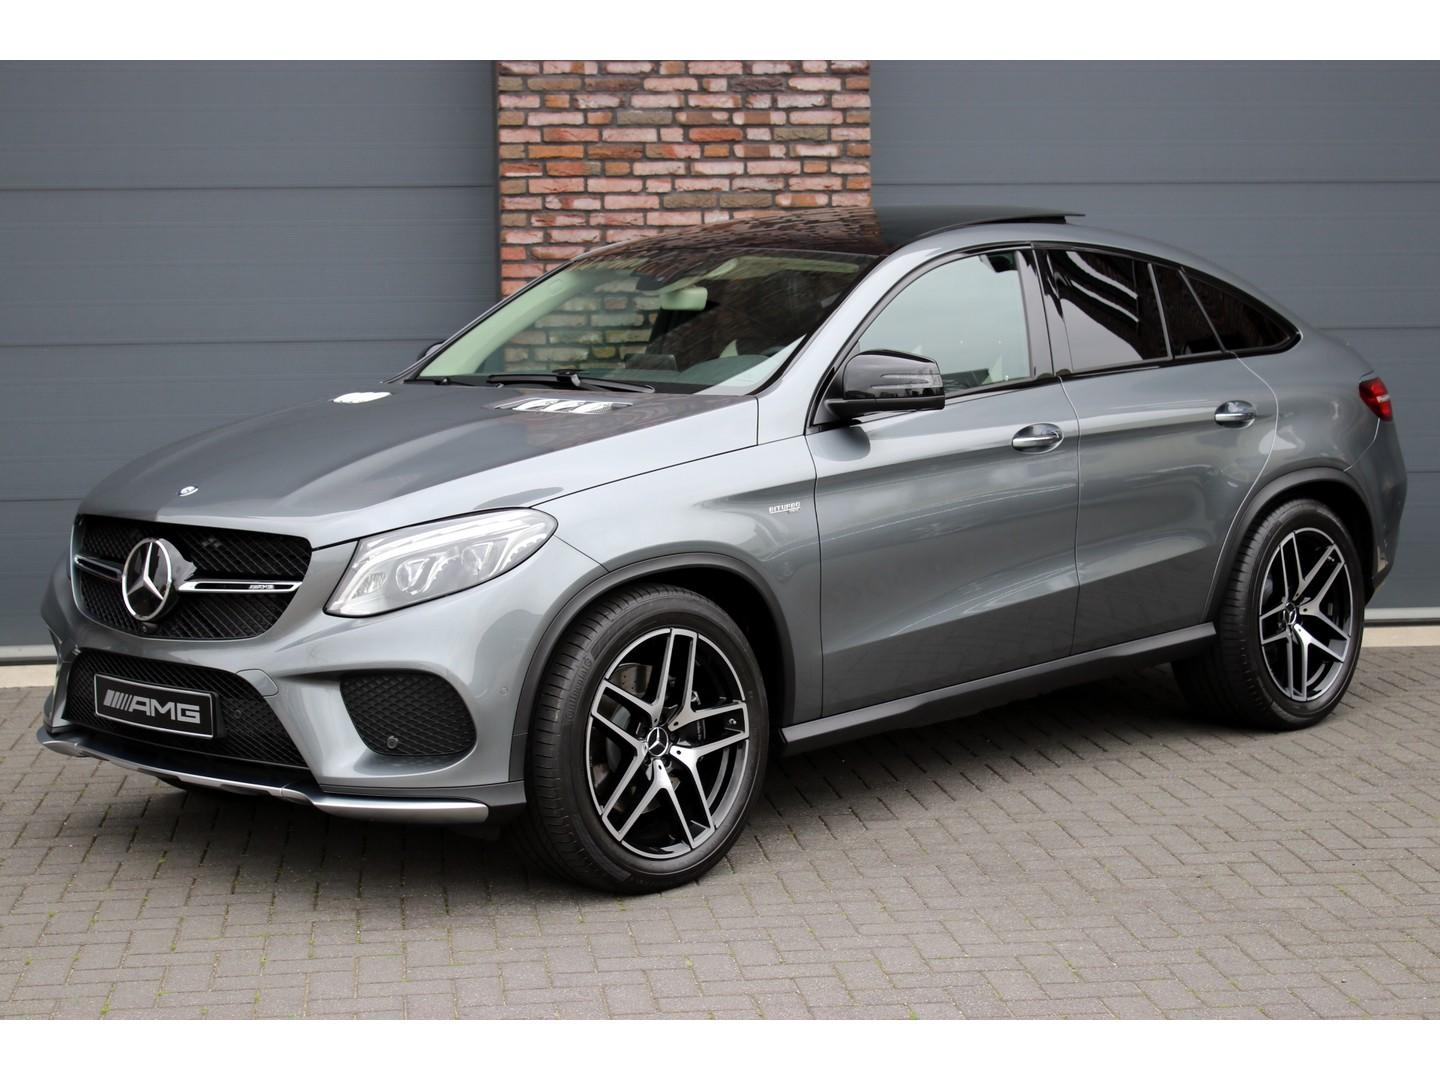 Mercedes-benz Gle-klasse Coupé 43 amg 4-matic aut9, luchtvering, panoramadak, distronic+, rij-assistent, comand, surround camera, keyless-go, memory, elek. trekhaak, harman kardon, led ils, etc.